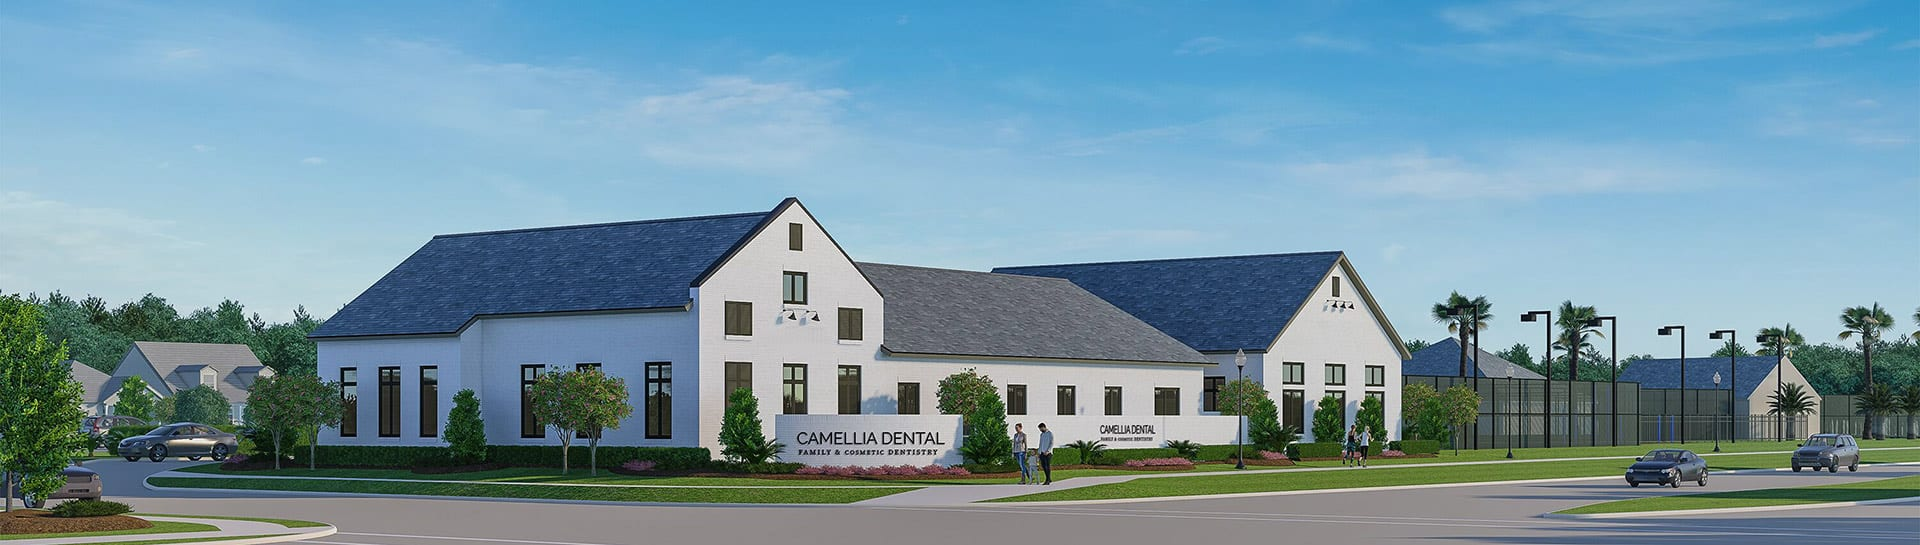 Camellia Dental Building Rendering